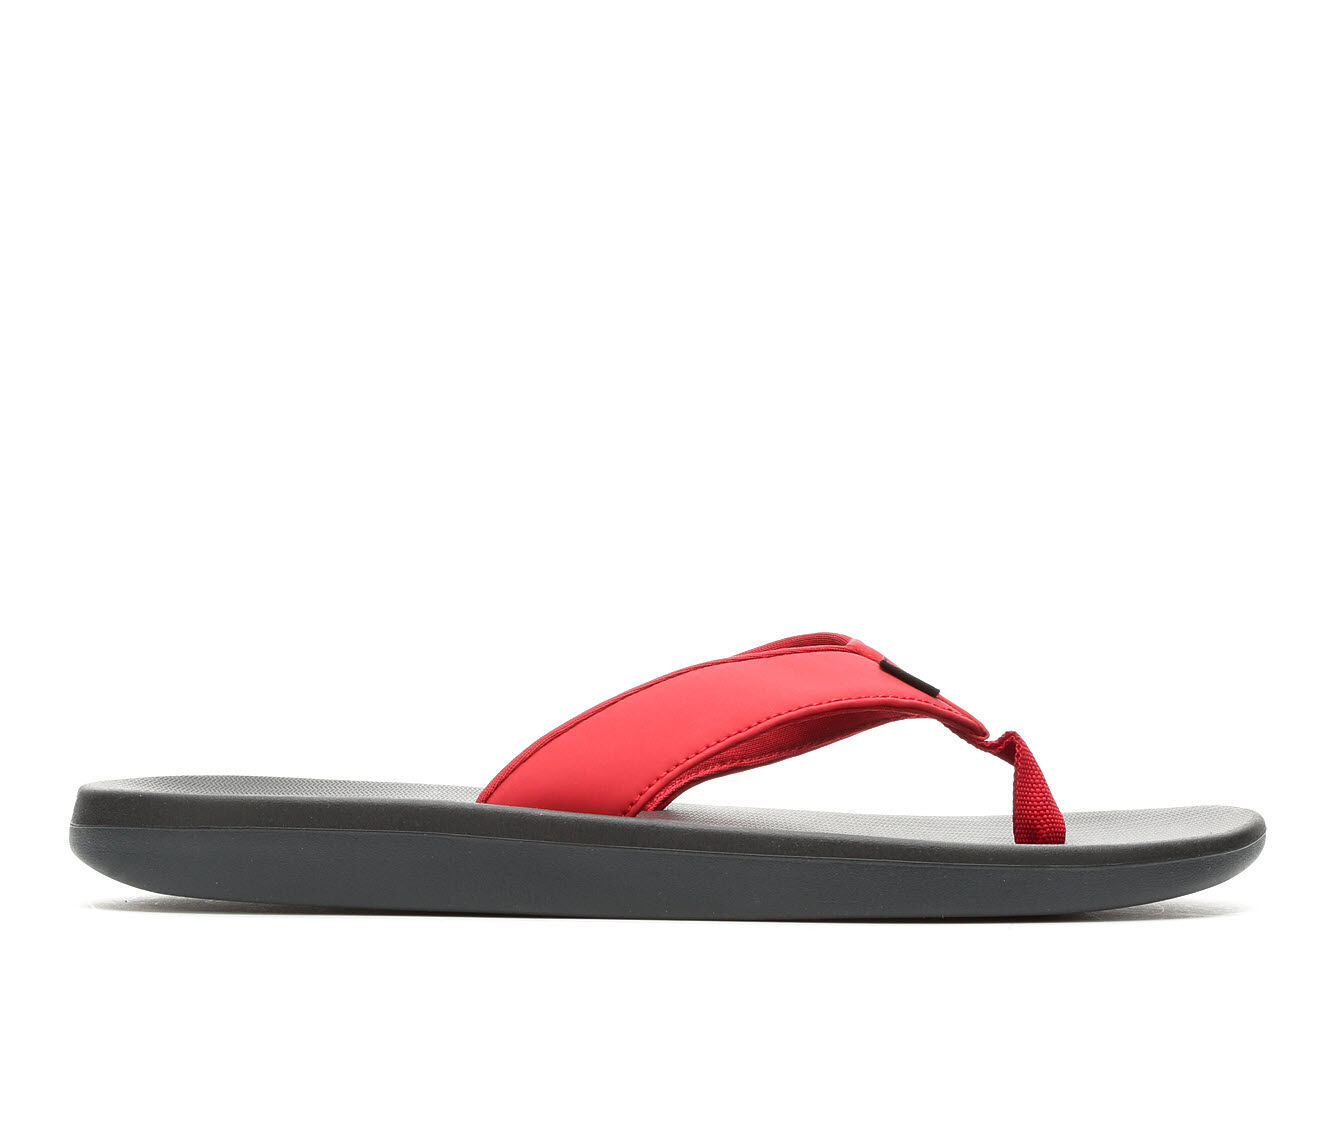 purchase authentic cheap Men's Nike Kepa Kai Flip-Flops Red/Wht/Black